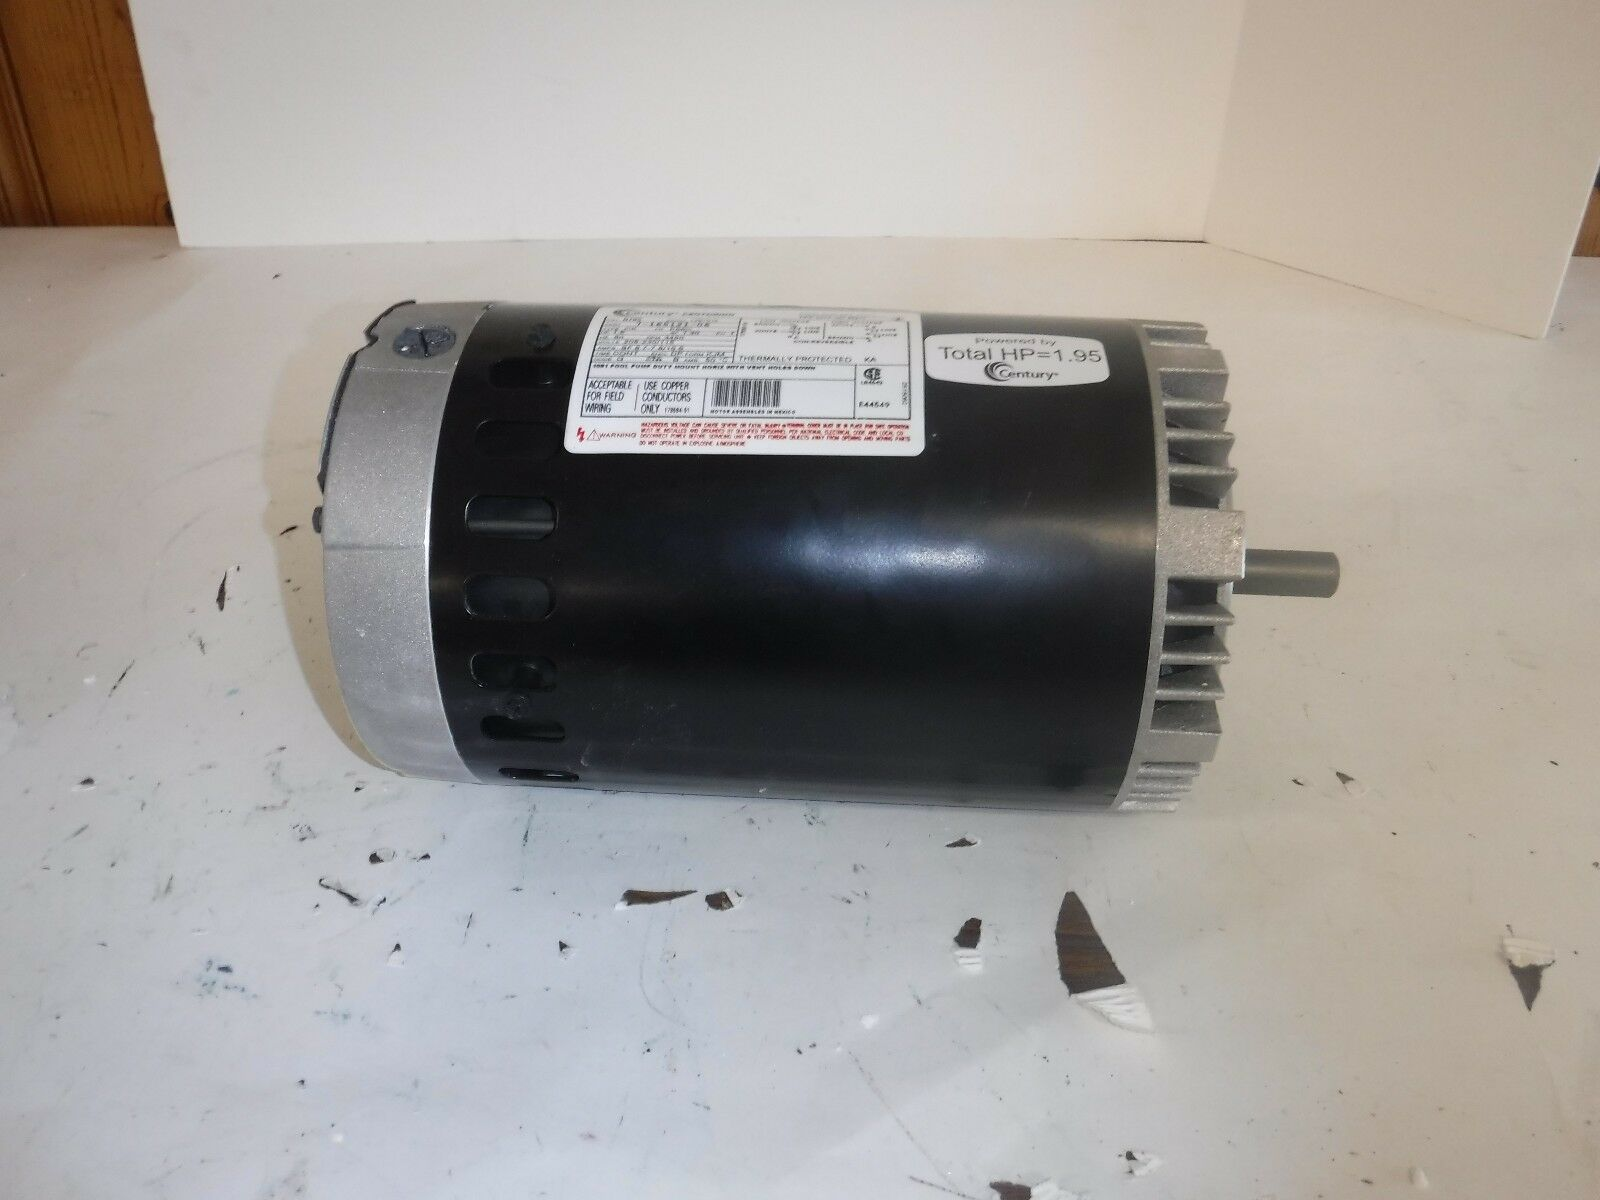 NEW 1-1/2 HP Pool and and and Spa Pump Motor, Permanent Split Capacitor (T) 0bf377